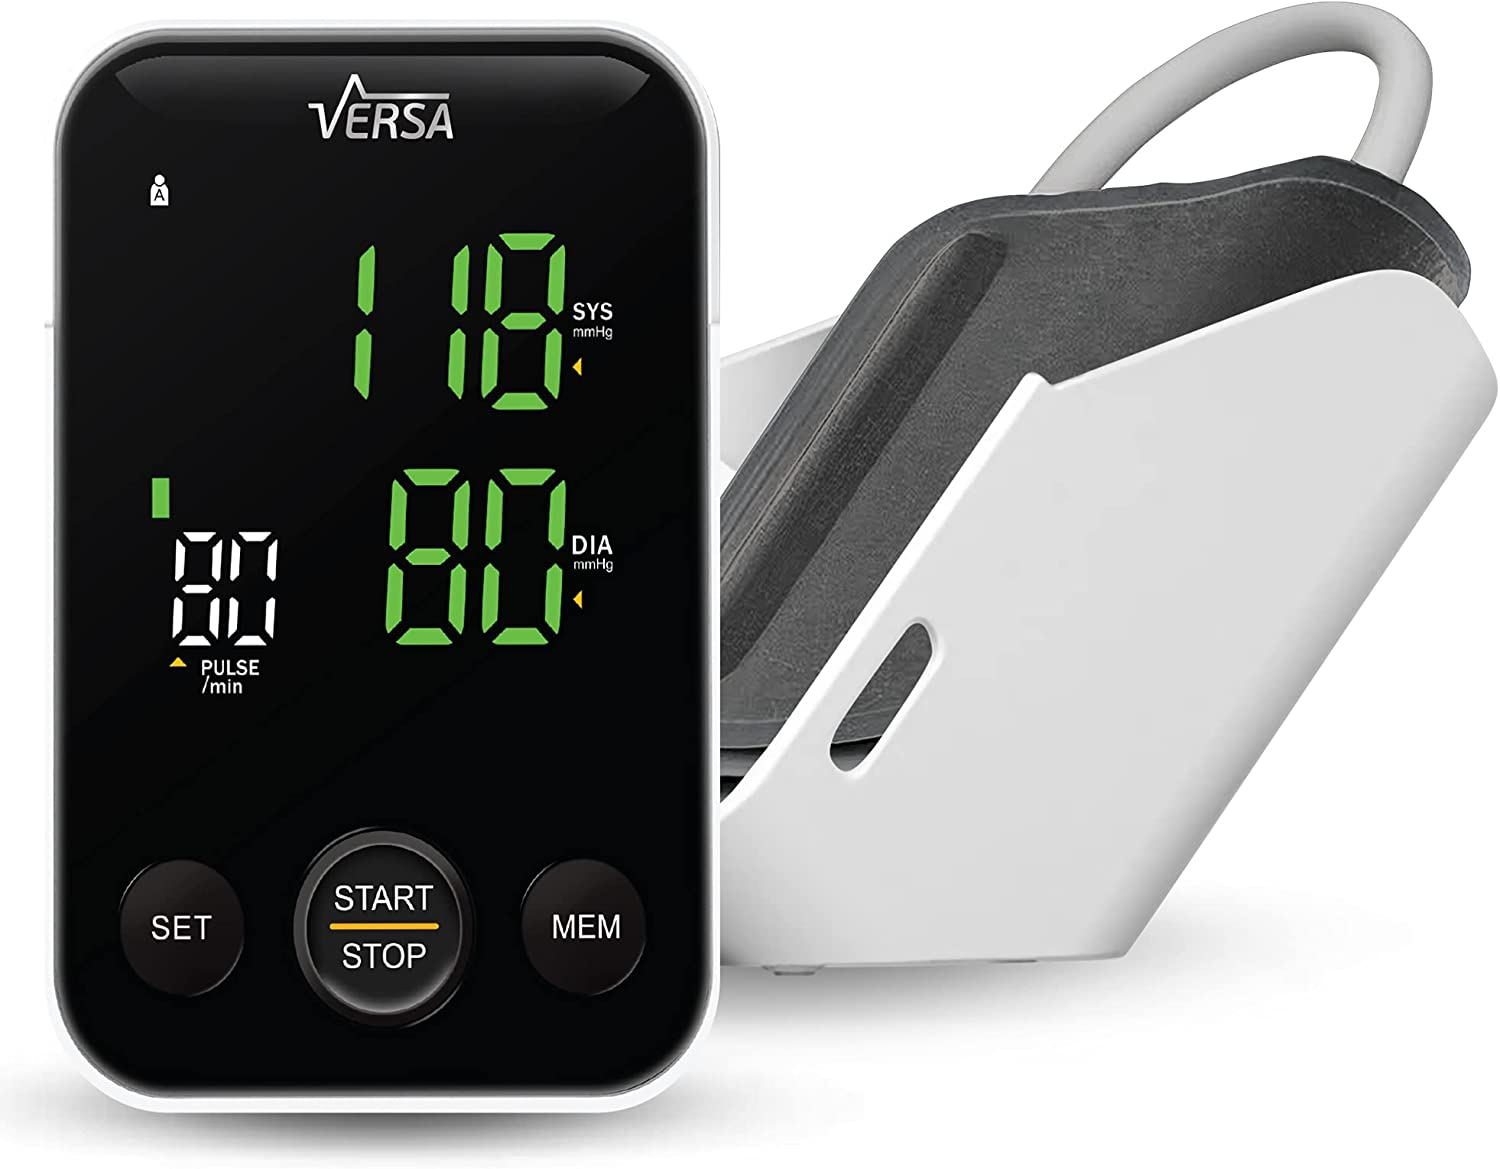 Care Touch Versa Blood Pressure Monitor, Upper Arm BP Monitor with Storage and Blood Pressure Cuff - Digital Blood Pressure Machine for Home and Professional Use